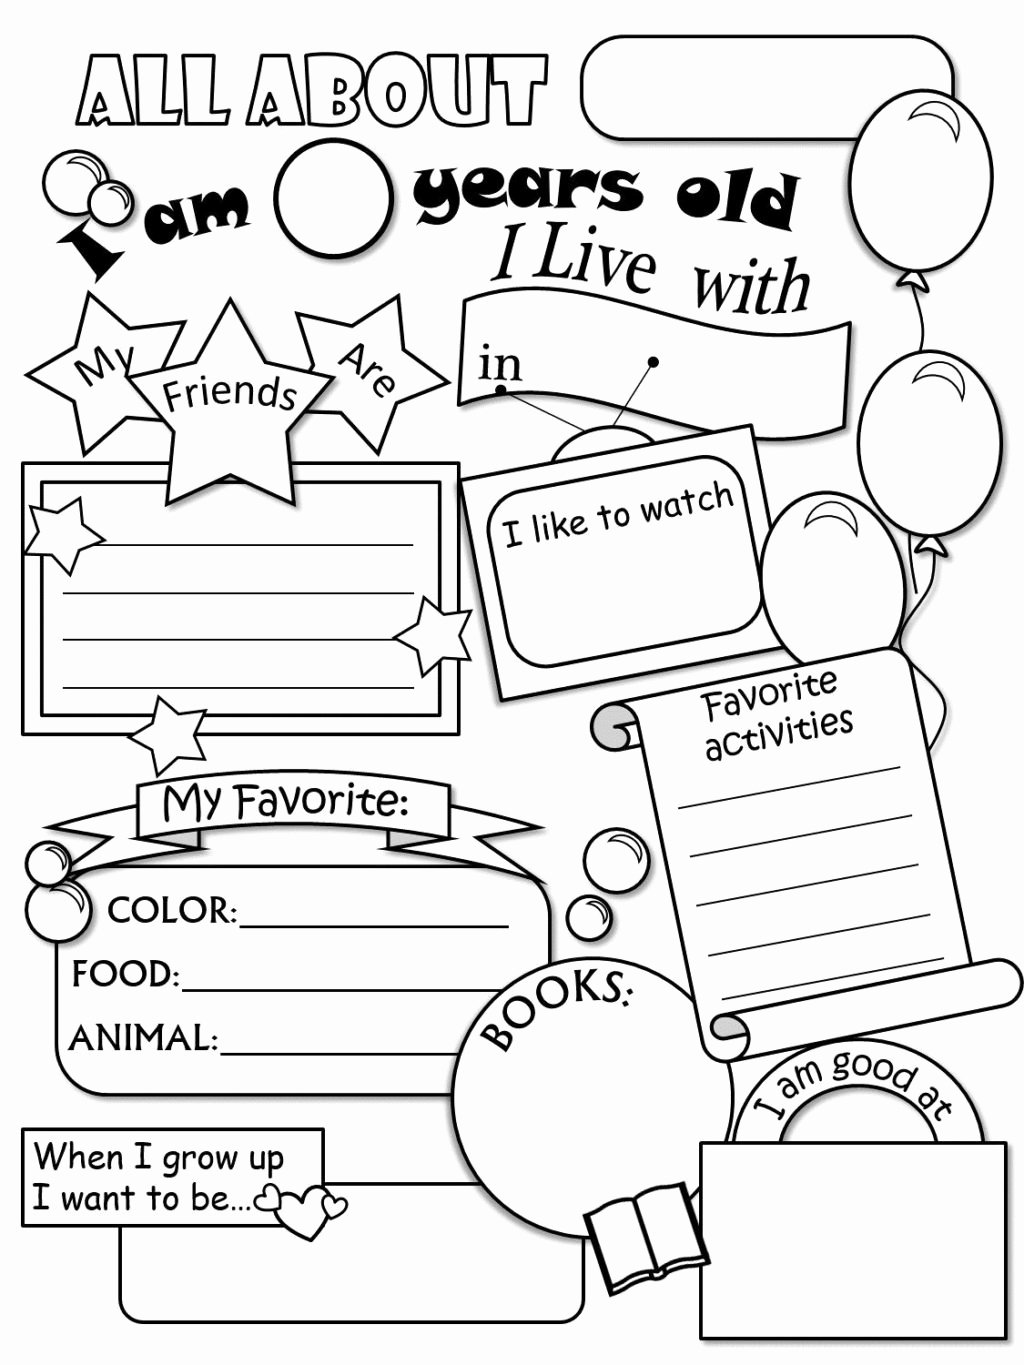 Summer Fun Worksheets for Preschoolers Ideas Worksheet Summer Fun Worksheets for Preschoolers Math 49